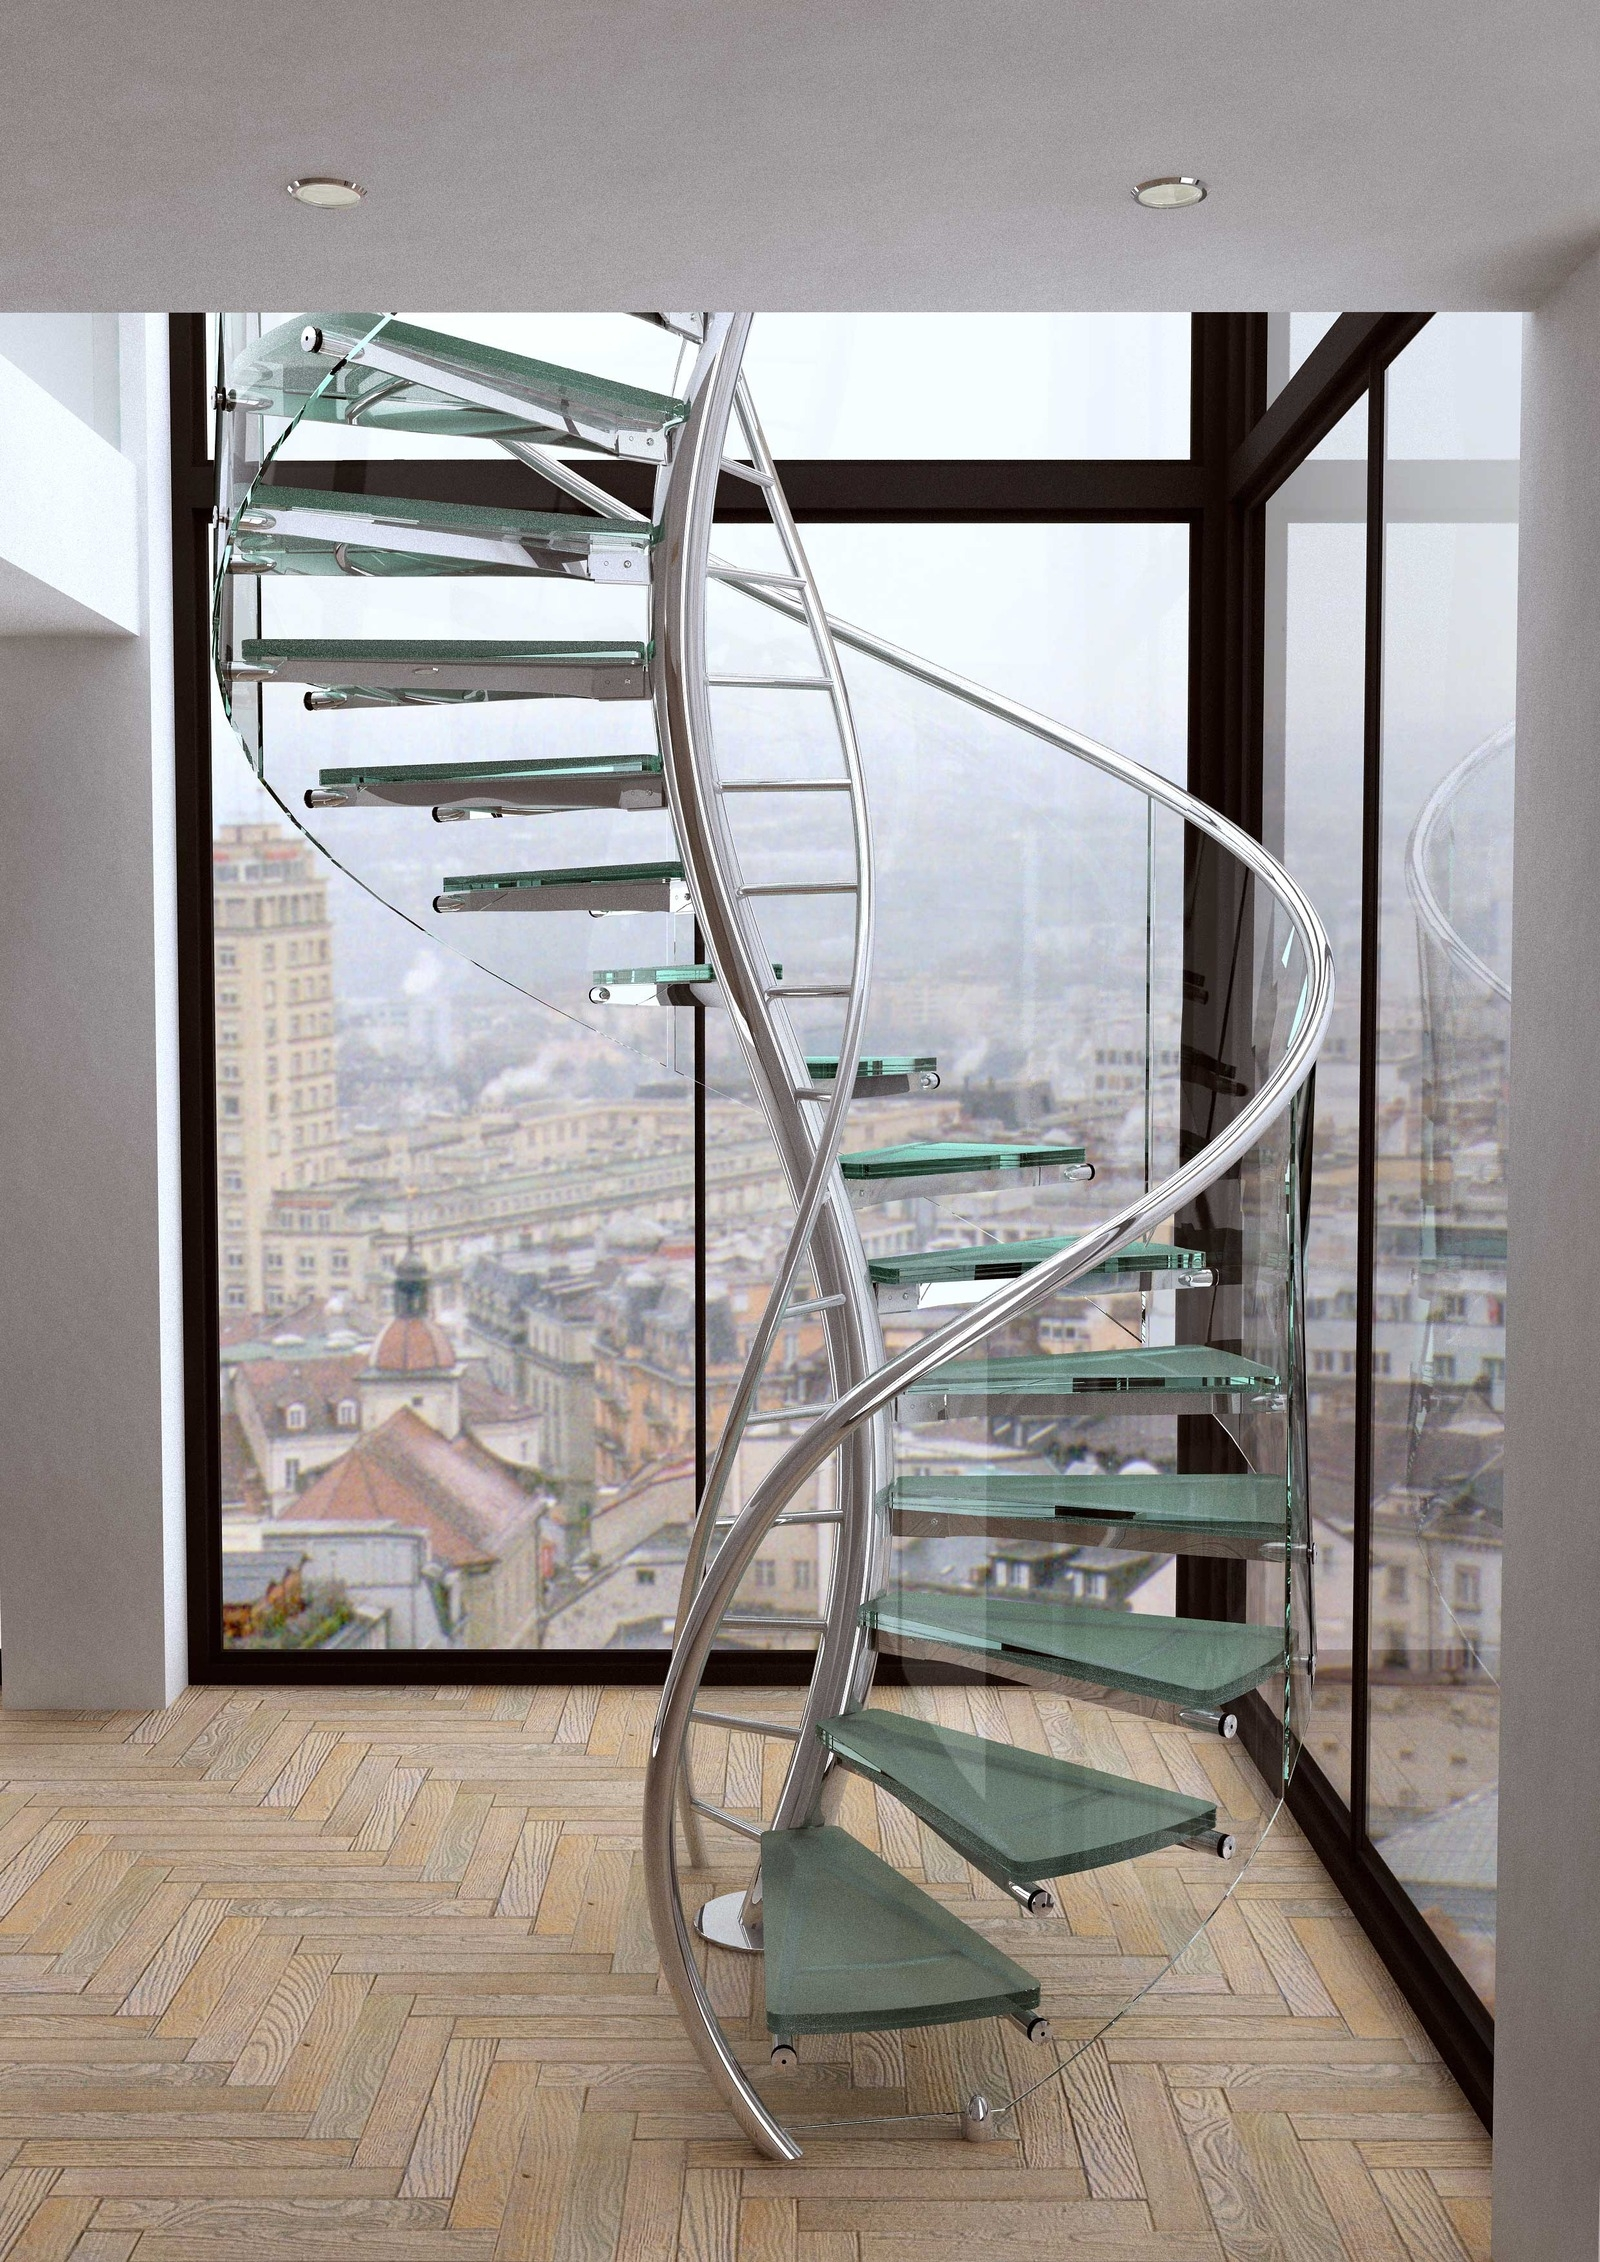 Unique And Creative Staircase Designs For Modern Homes   Modern Staircase Designs For Homes   Spiral   Steel   Minimalist   Concrete   Awesome